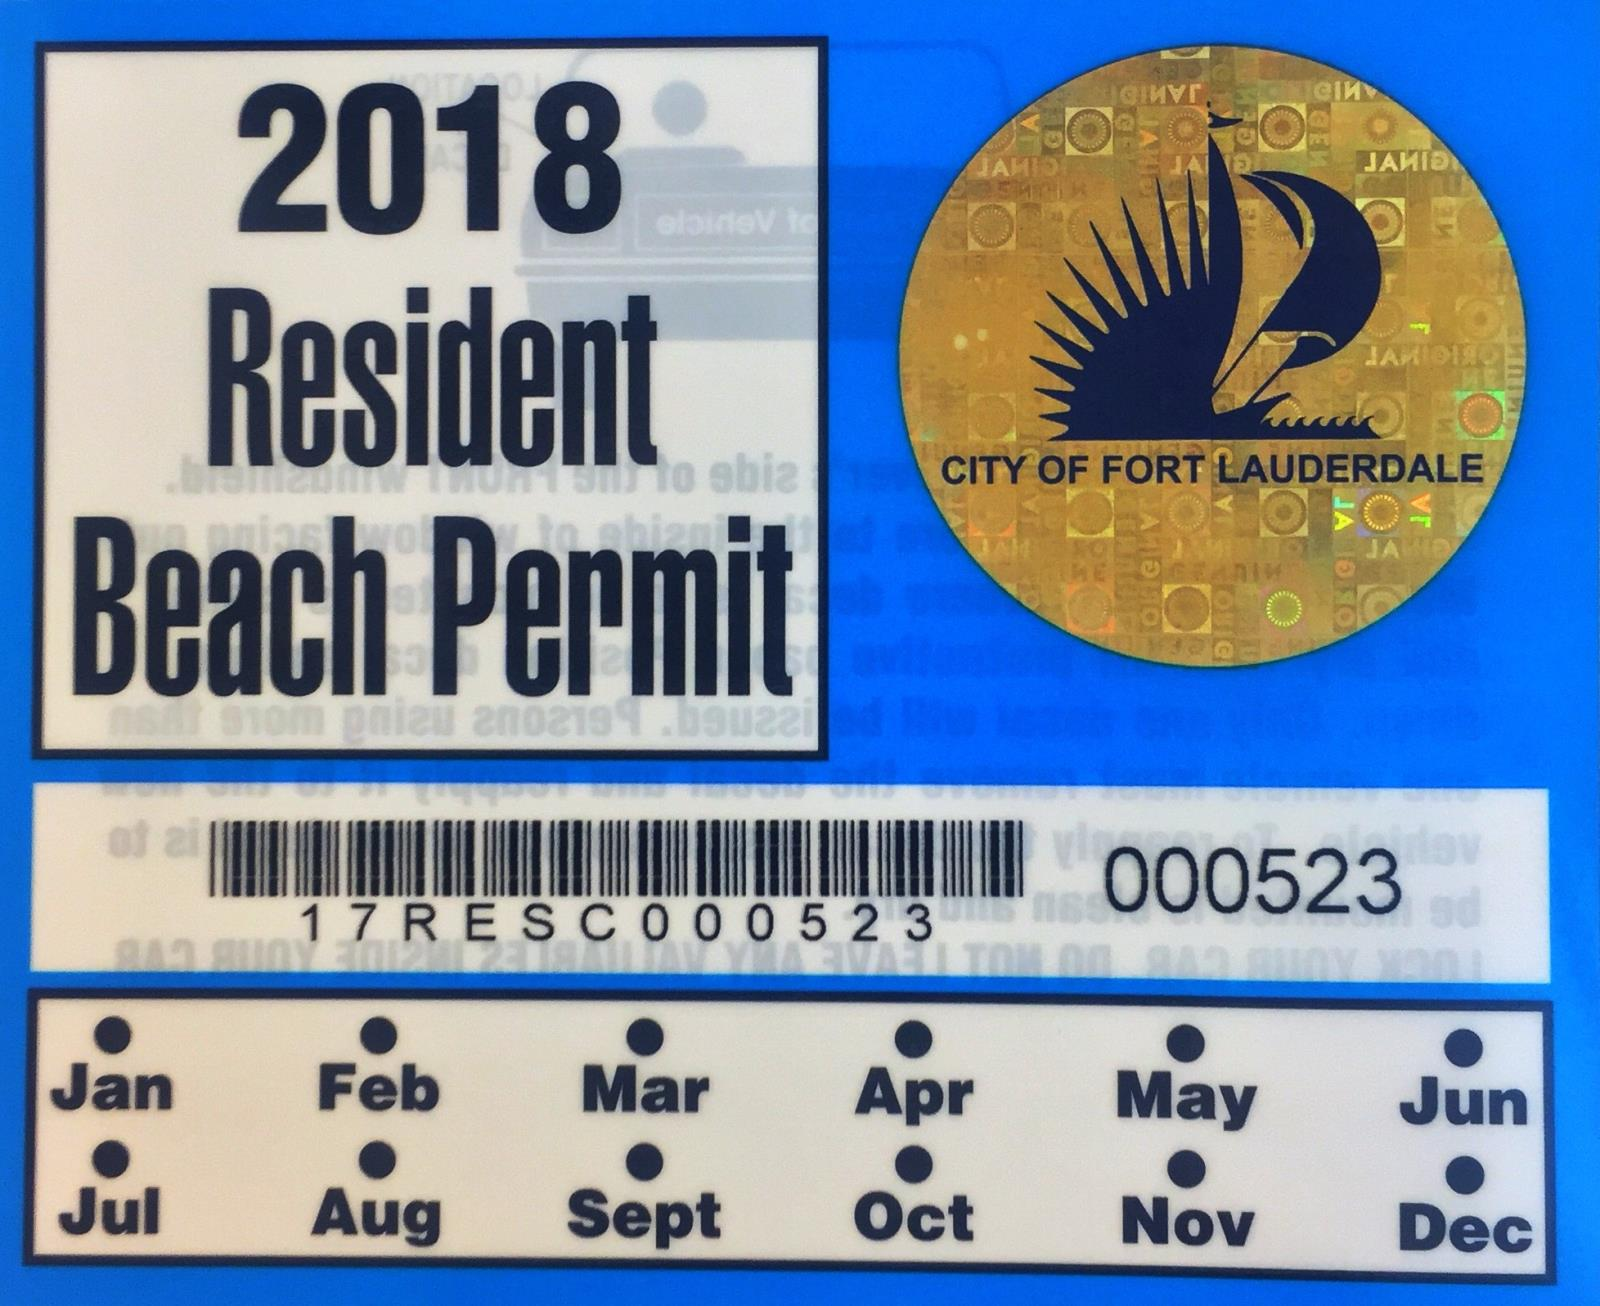 2018 Residential Beach Permit Monthly Parking Permits